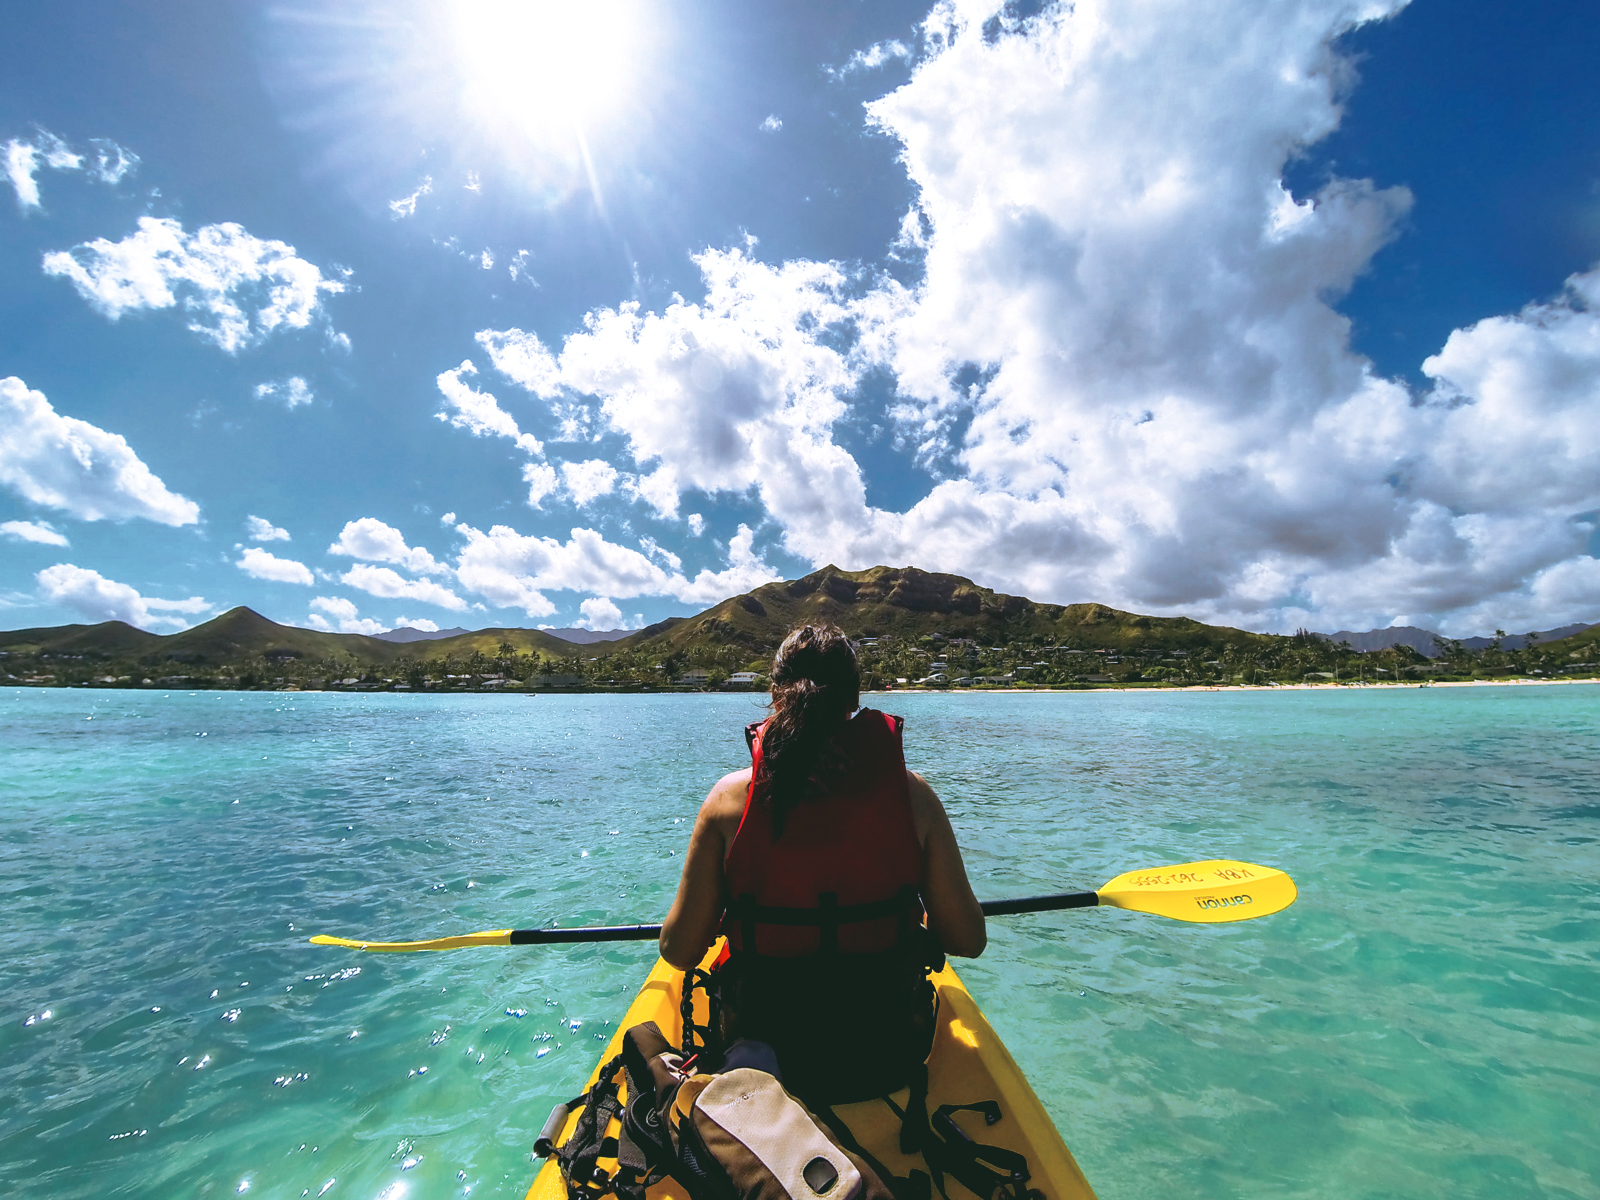 oahu, hawaii, kayaking